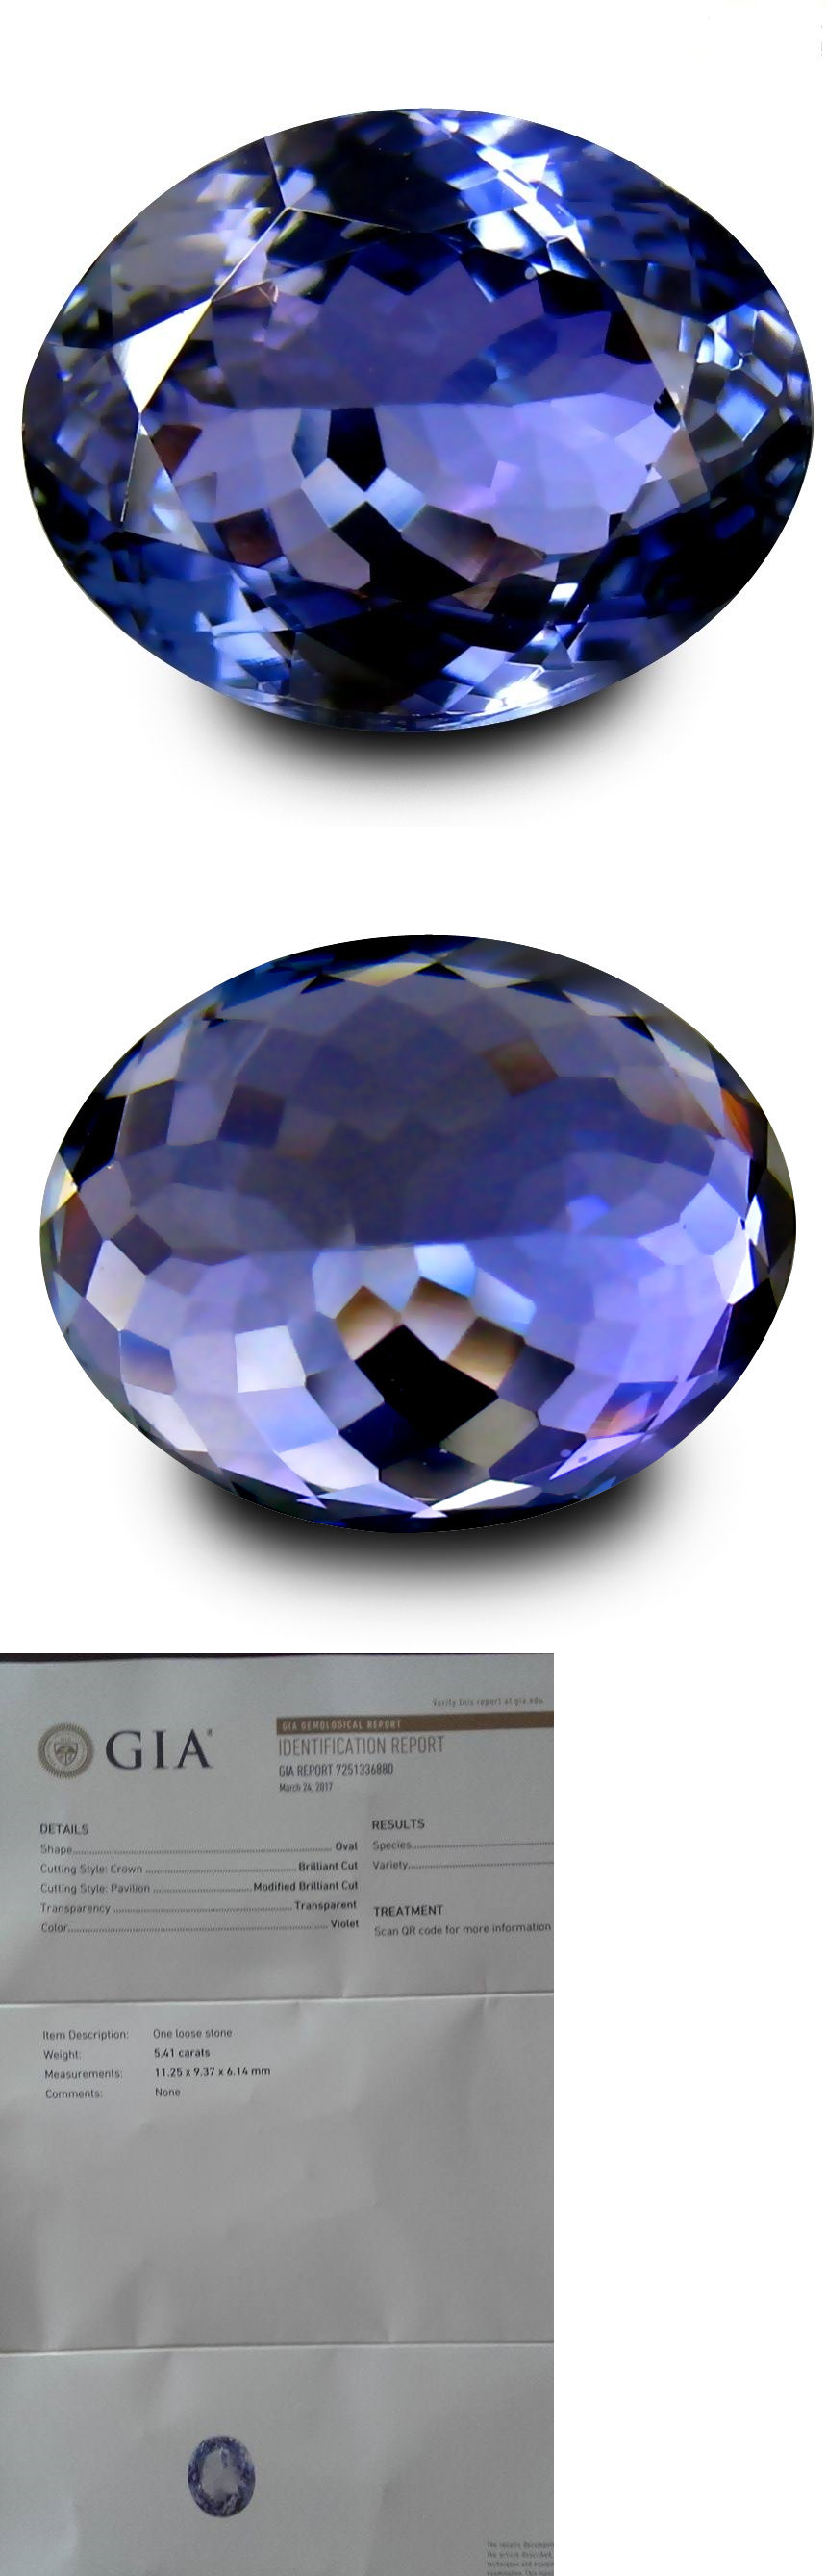 this by white s gold birthstone its decembers blue arizona in ring mine blog us december sarosi and tanzanite andrew beauty from the versatility sleeping turquoise color diamonds en gia of sky with for loved as shows set